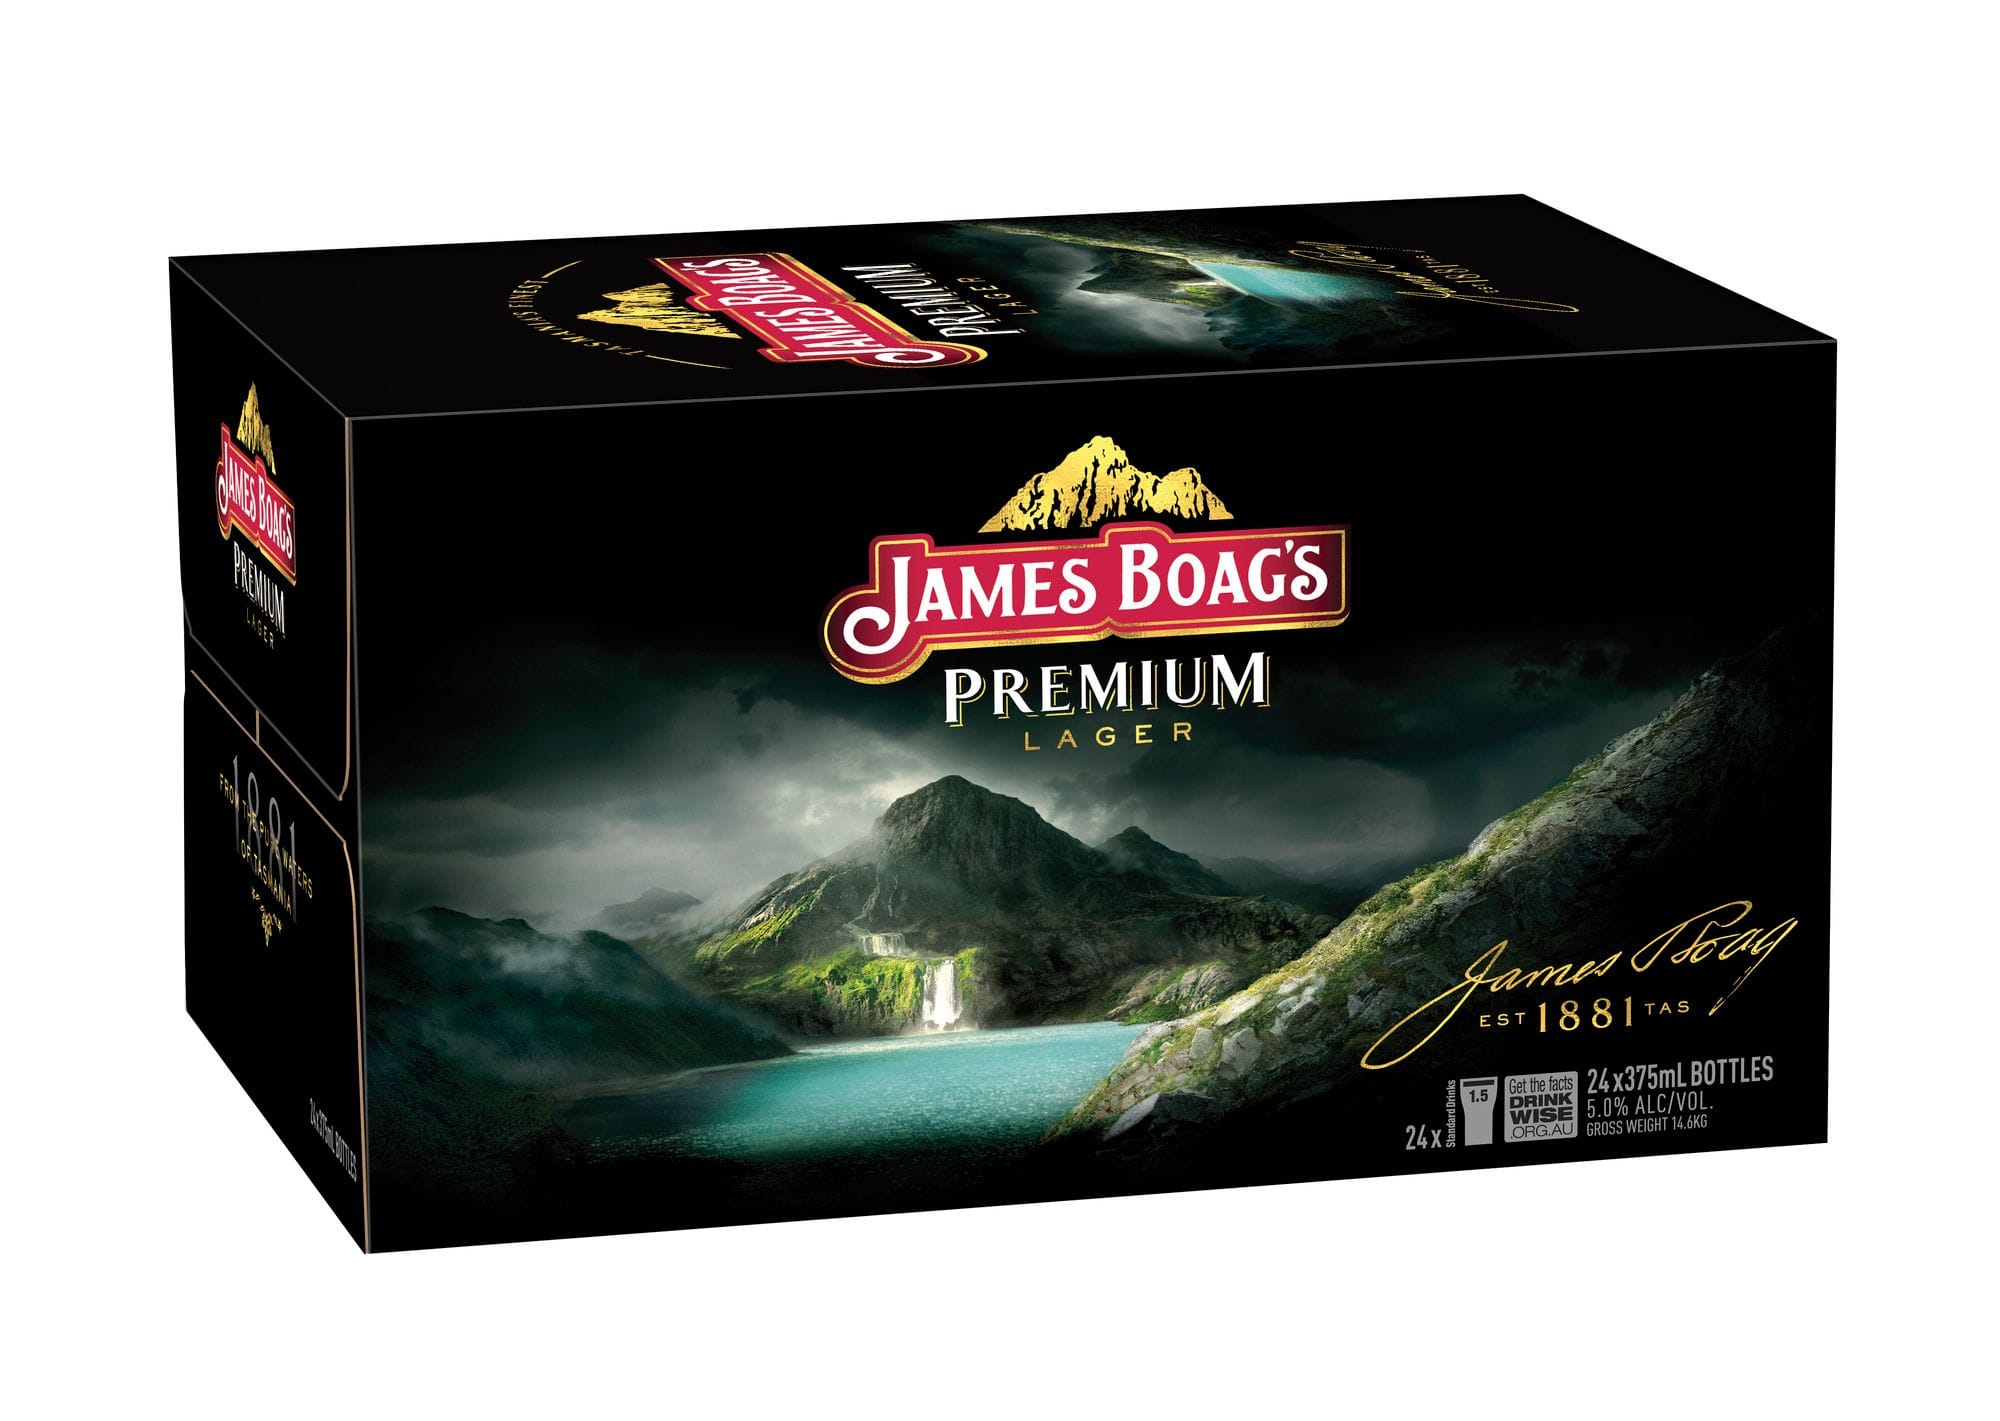 JAMES BOAGS PREMIUM CARTON